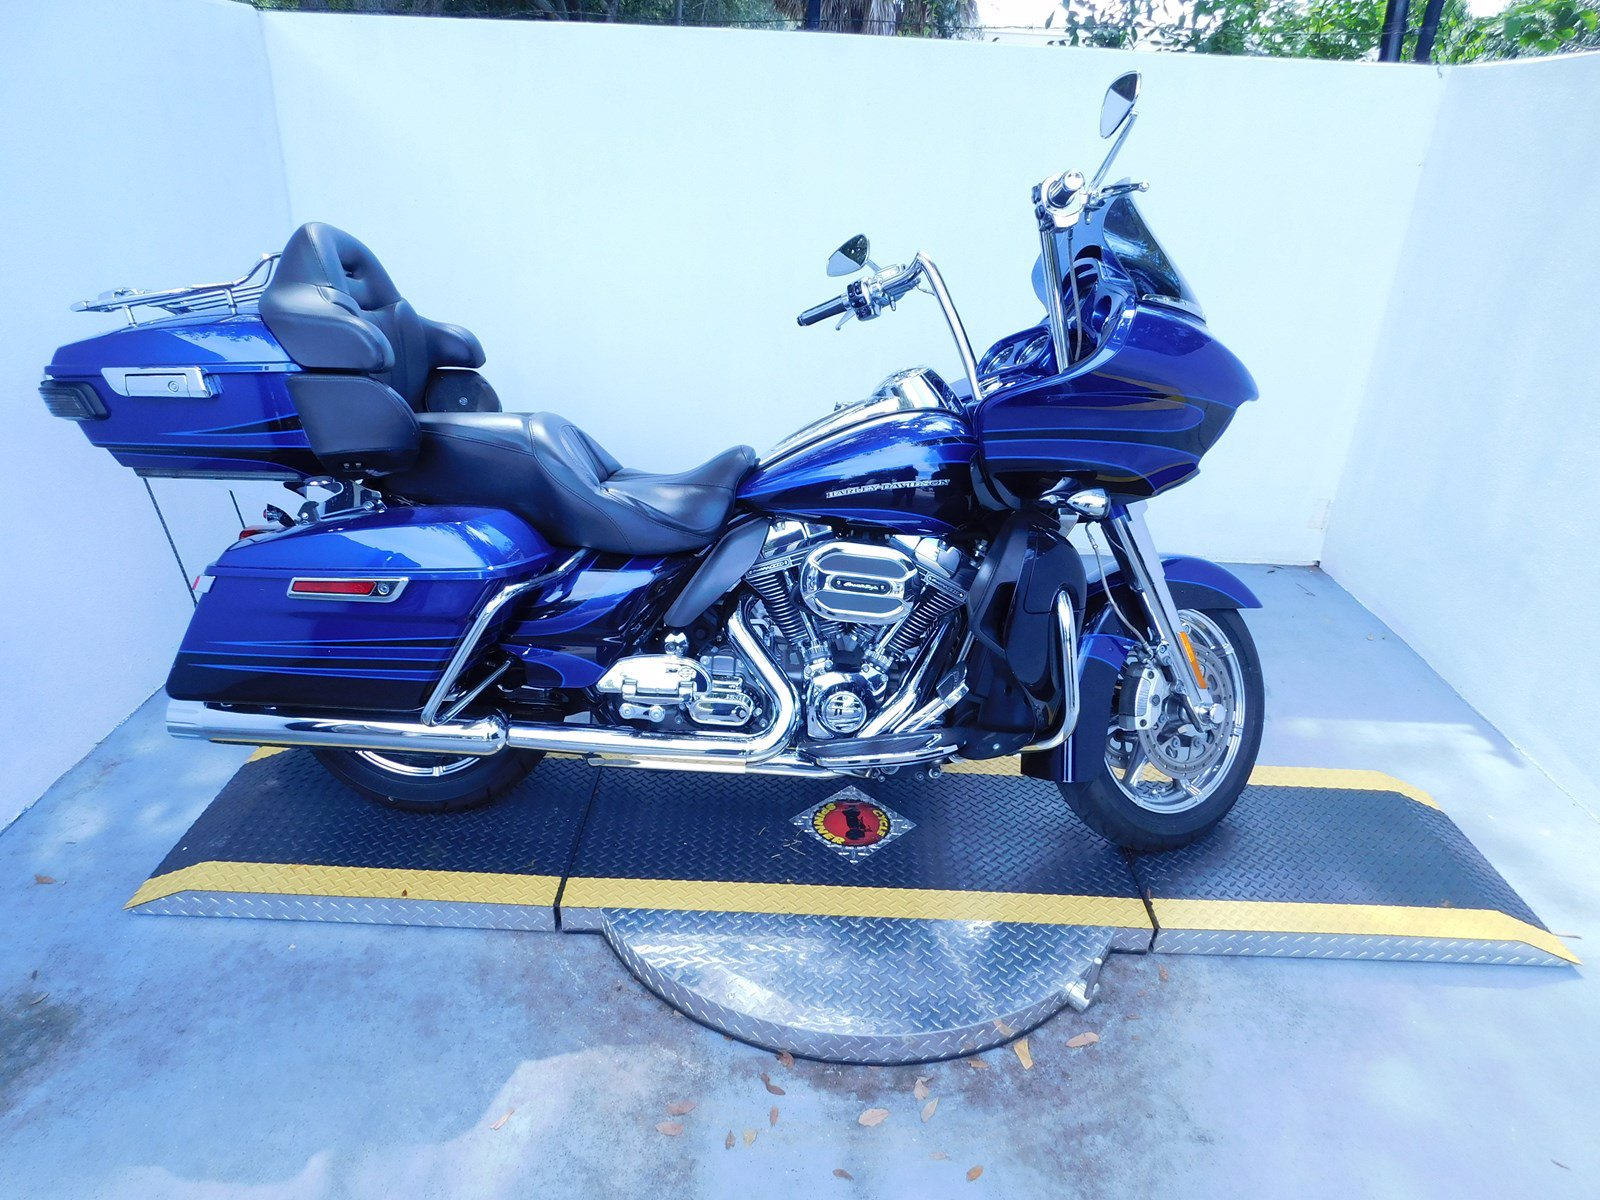 Pre-Owned 2015 Harley-Davidson Road Glide Ultra CVO FLTRUSE